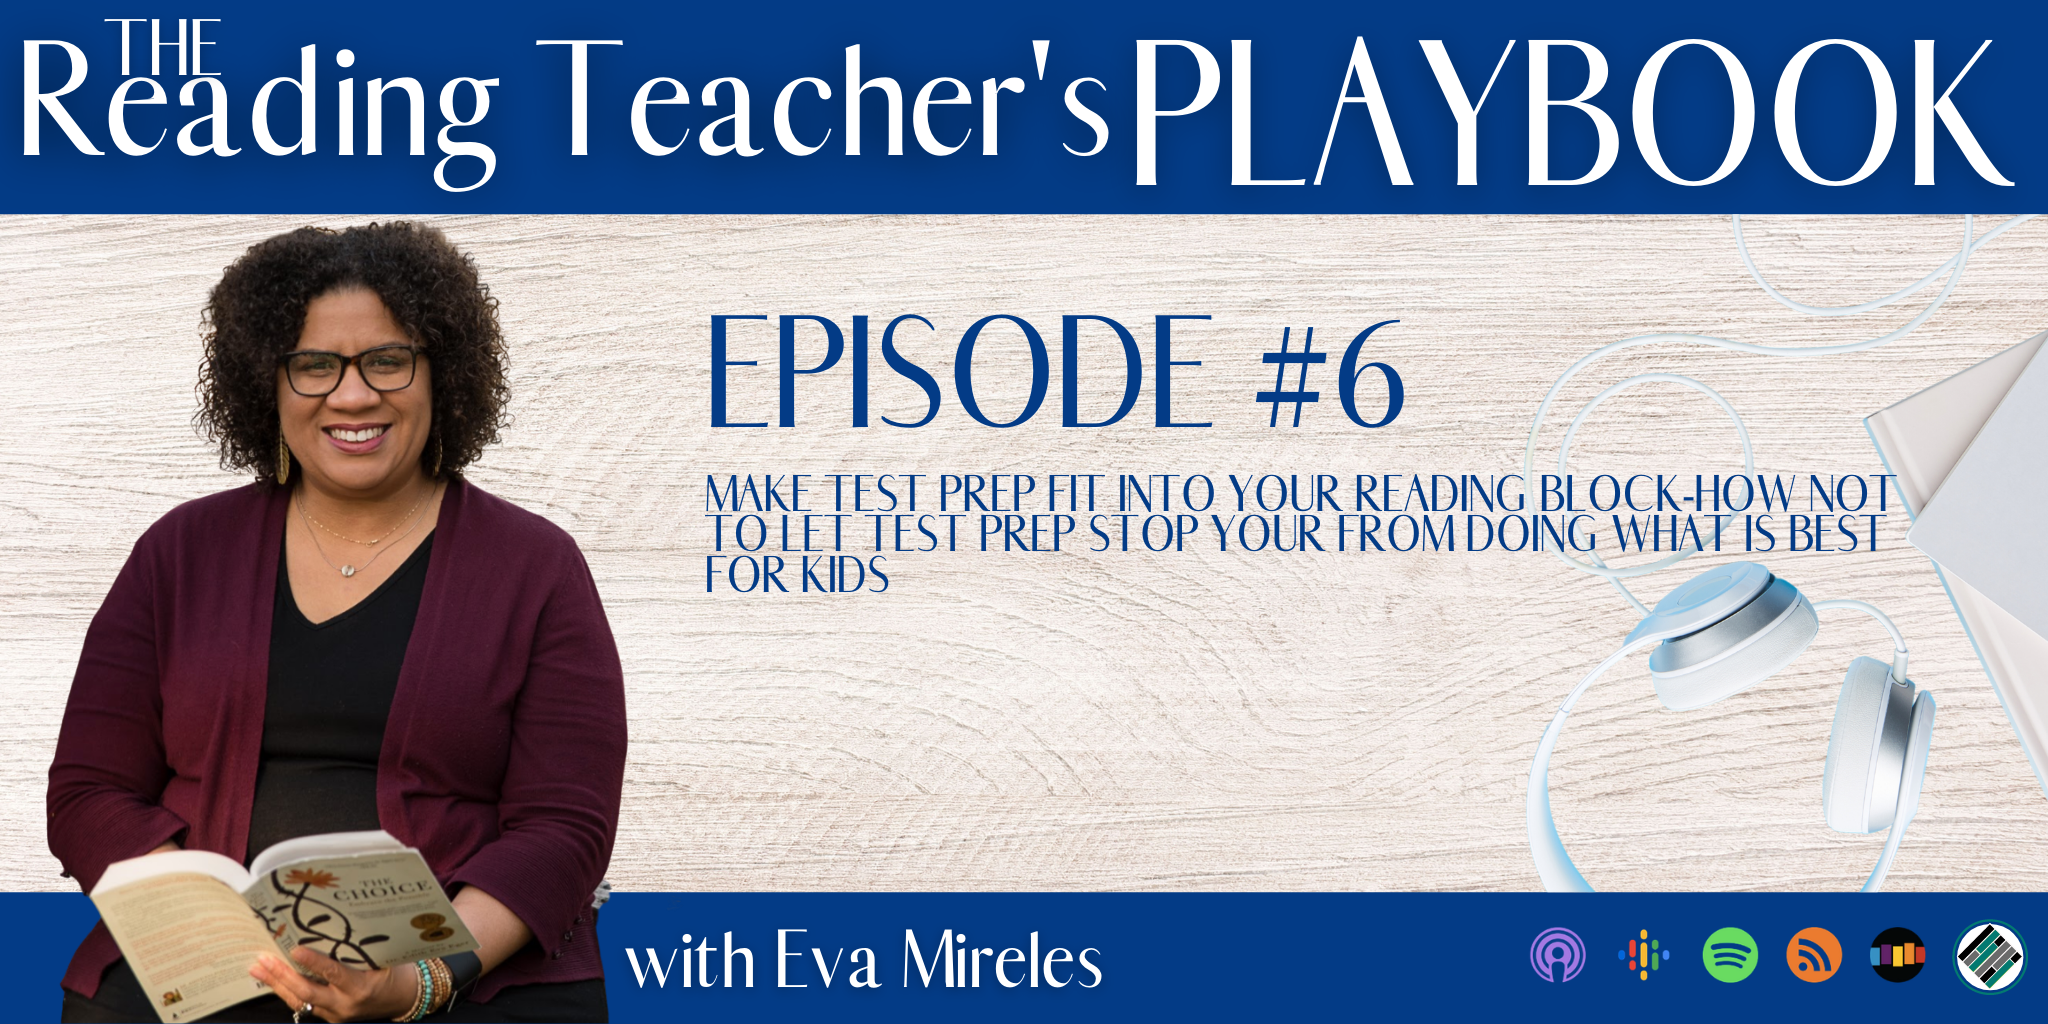 The-Reading-Teacher's-Playbook-Make-Test-Prep-Fit-Your-Reading-Block-Ep6